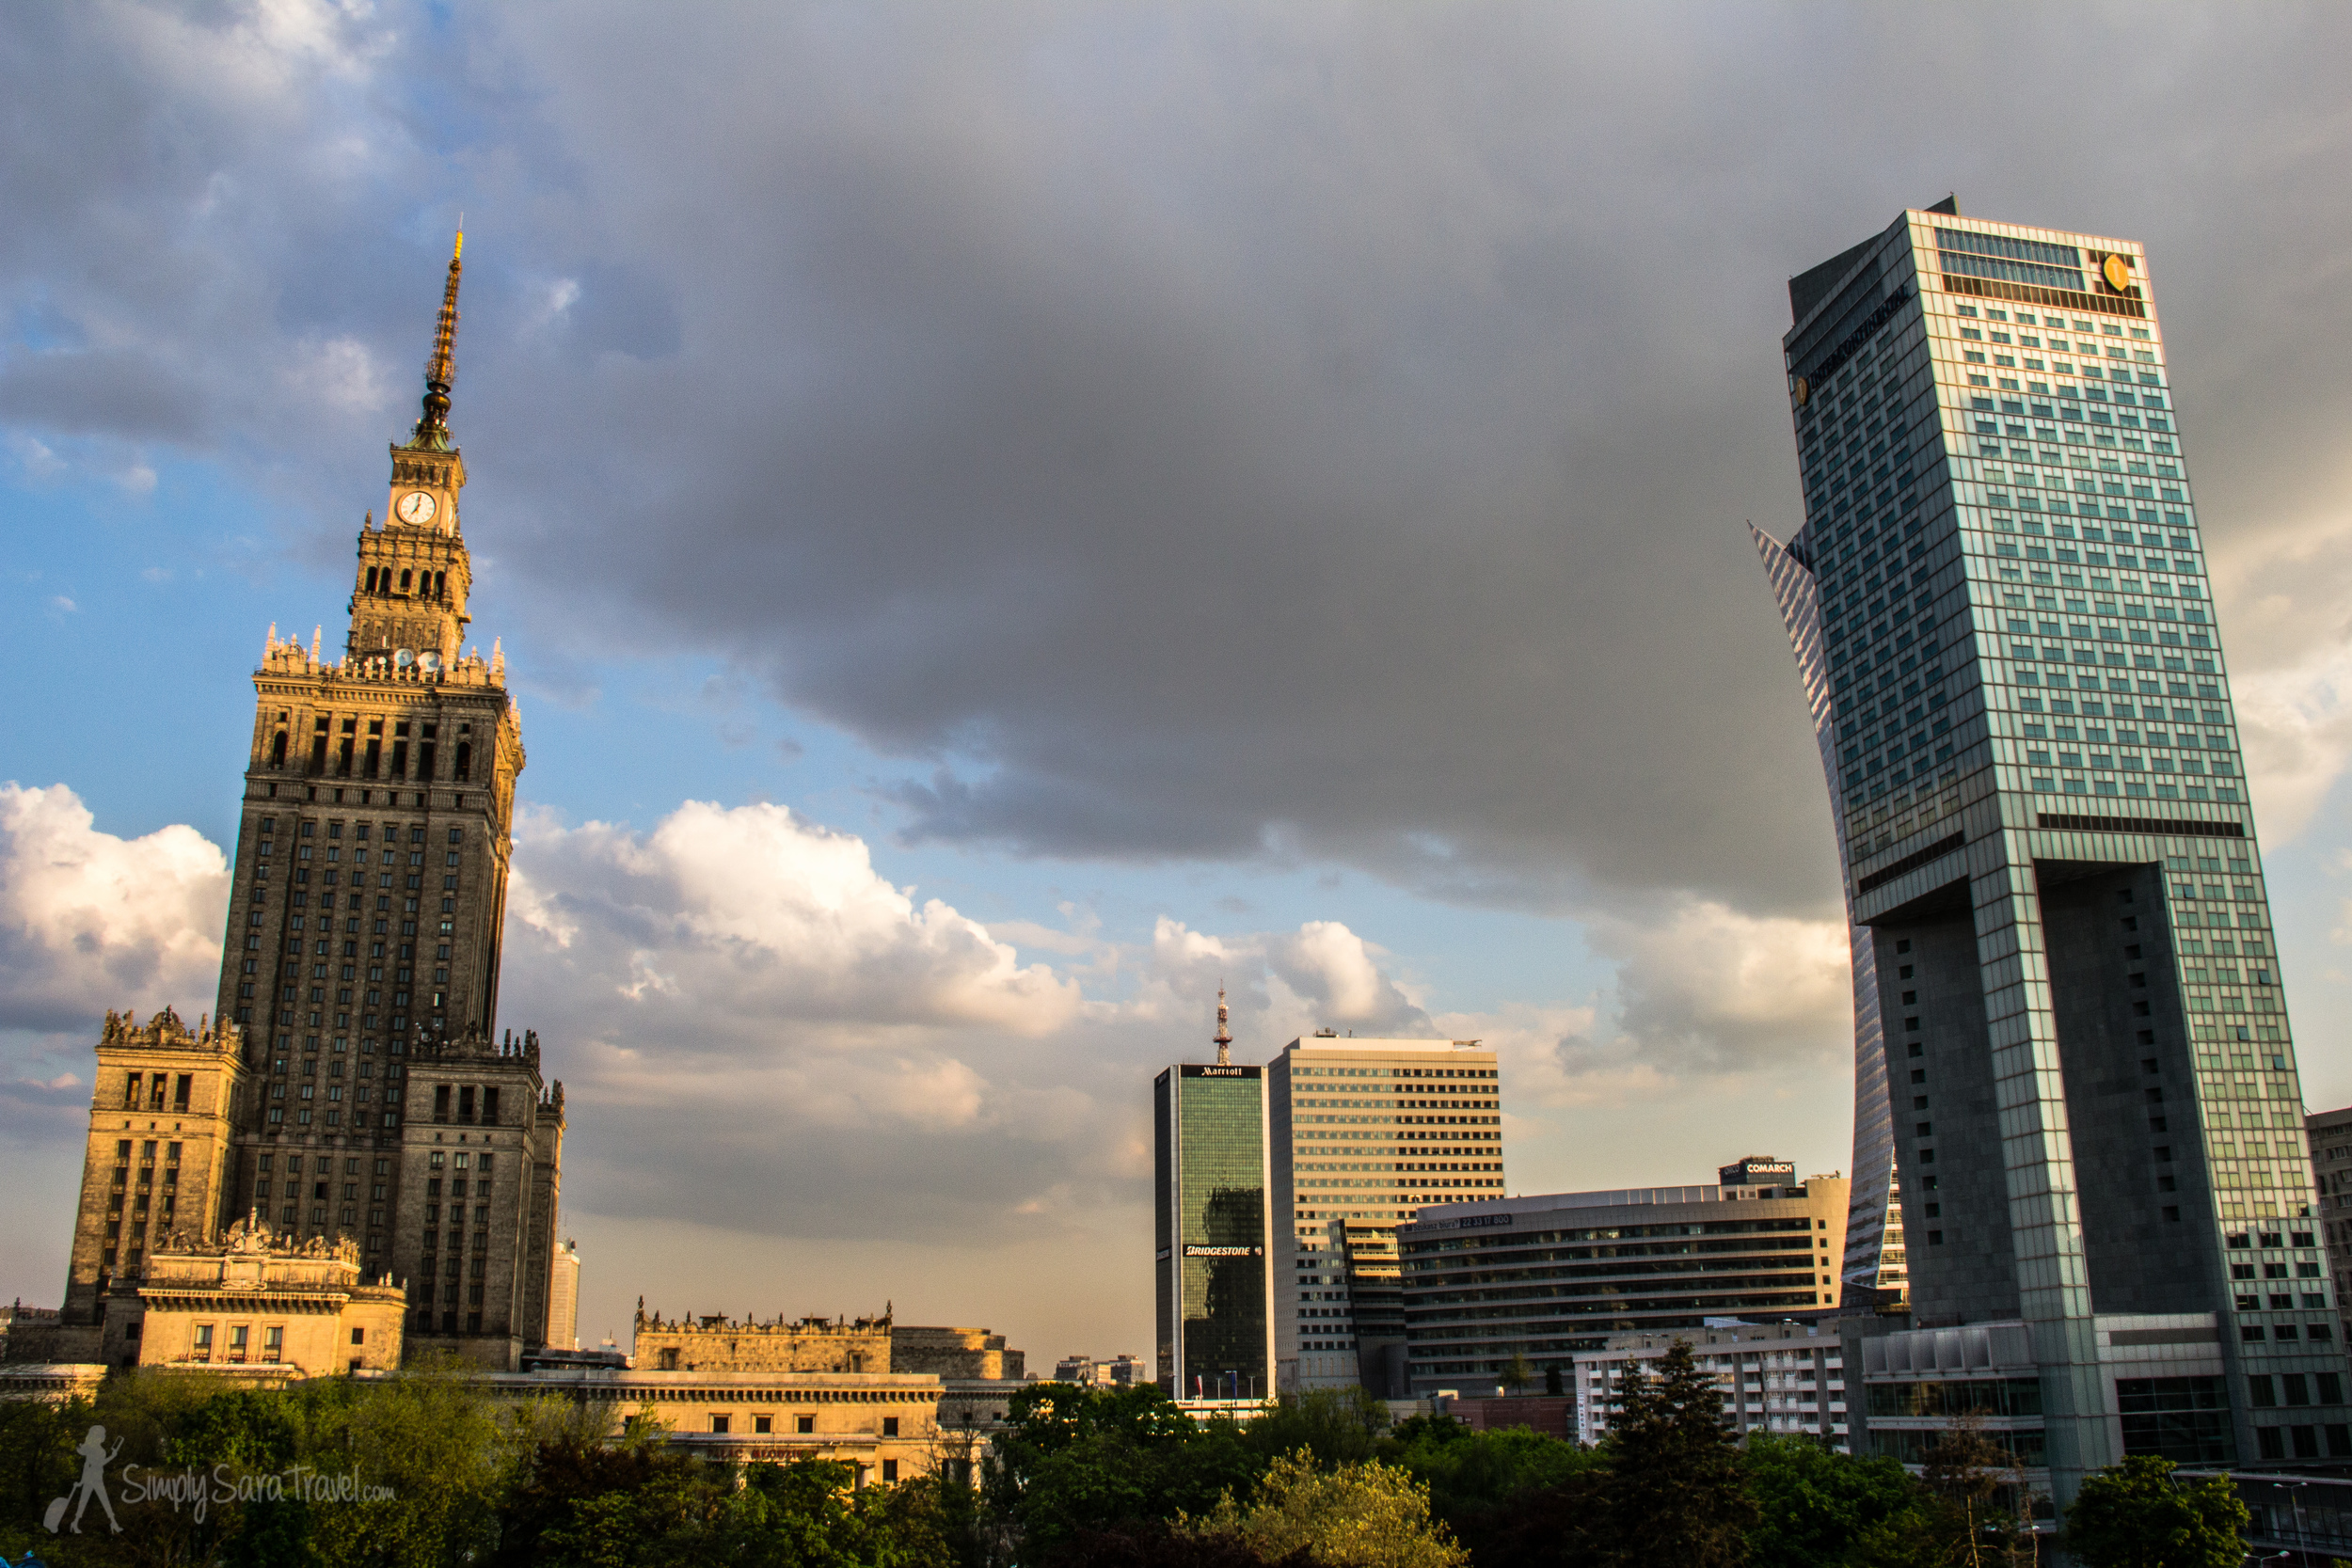 Warsaw, as seen from the balcony of our Airbnb apartment rental